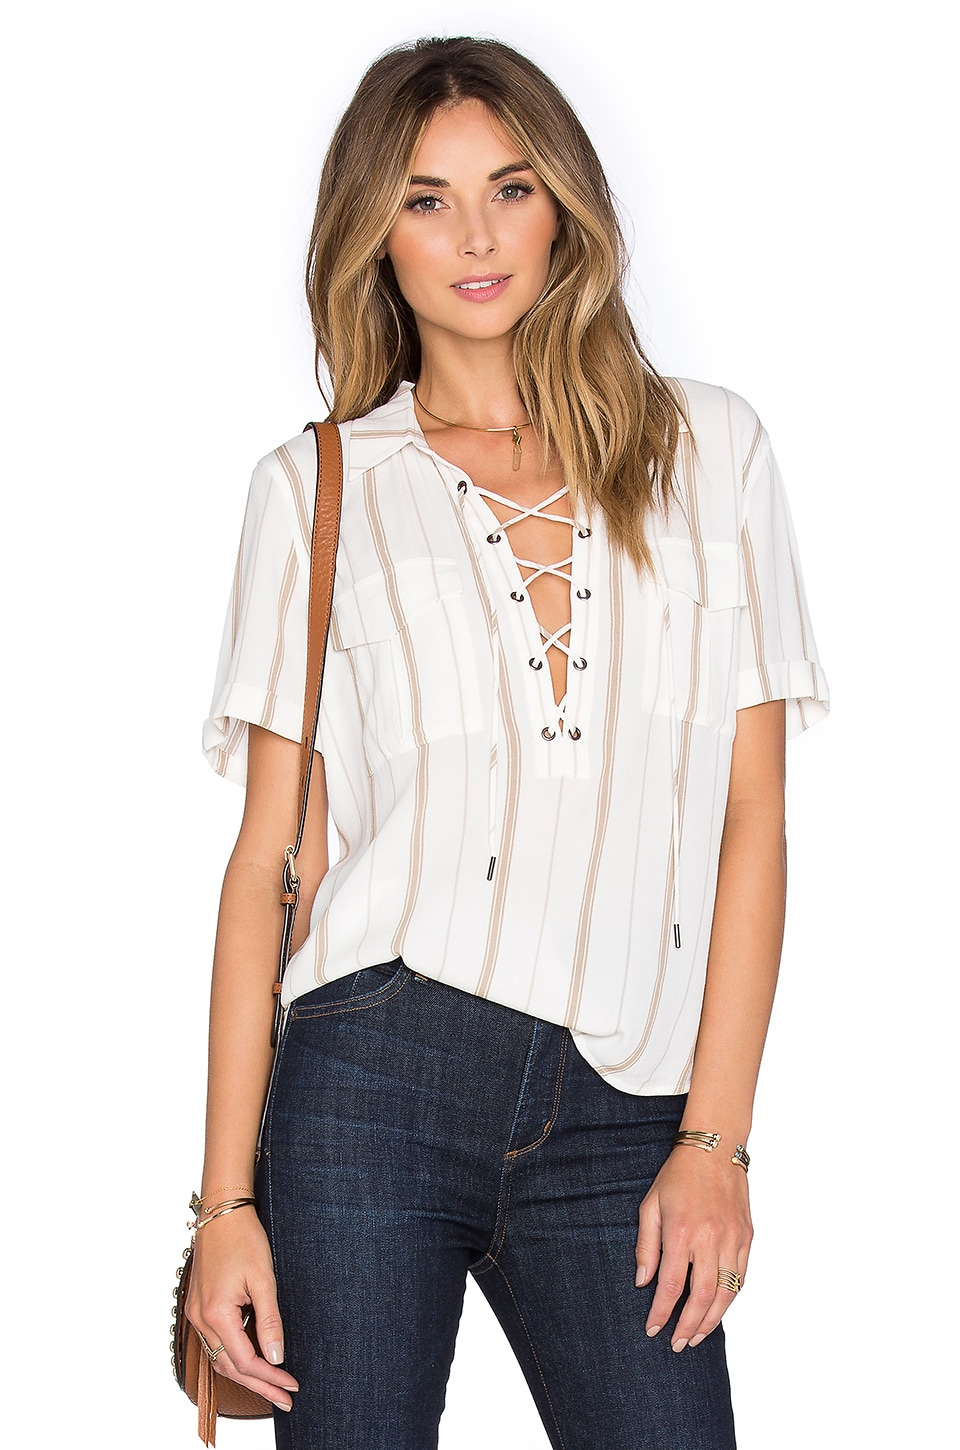 L'Academie The Safari Blouse in Stripe